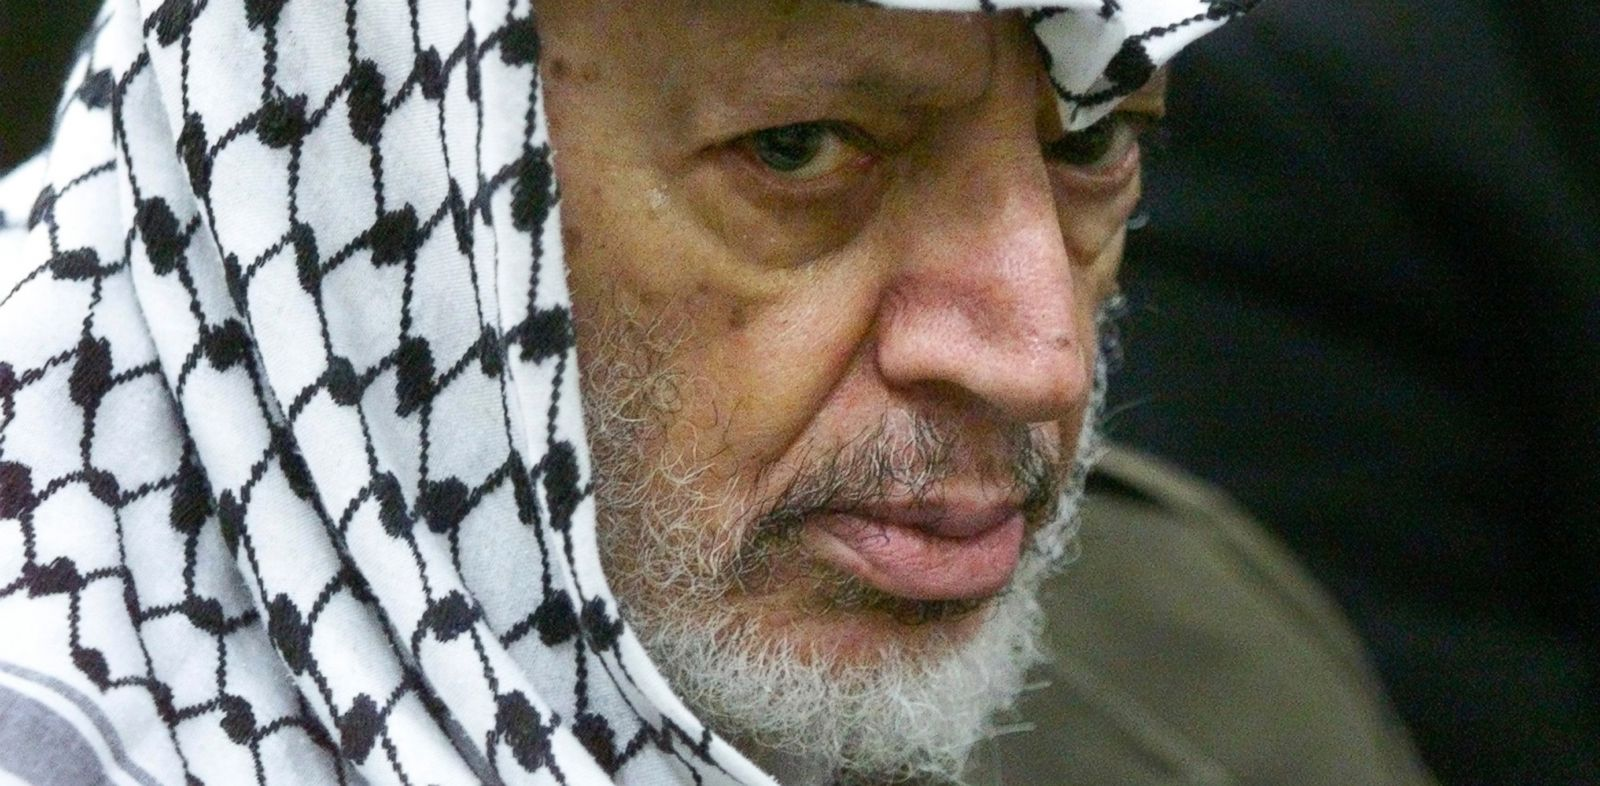 PHOTO: In this May 31, 2002 file photo, Palestinian leader Yasser Arafat pauses during the weekly Muslim prayers in his headquarters in the West Bank city of Ramallah.